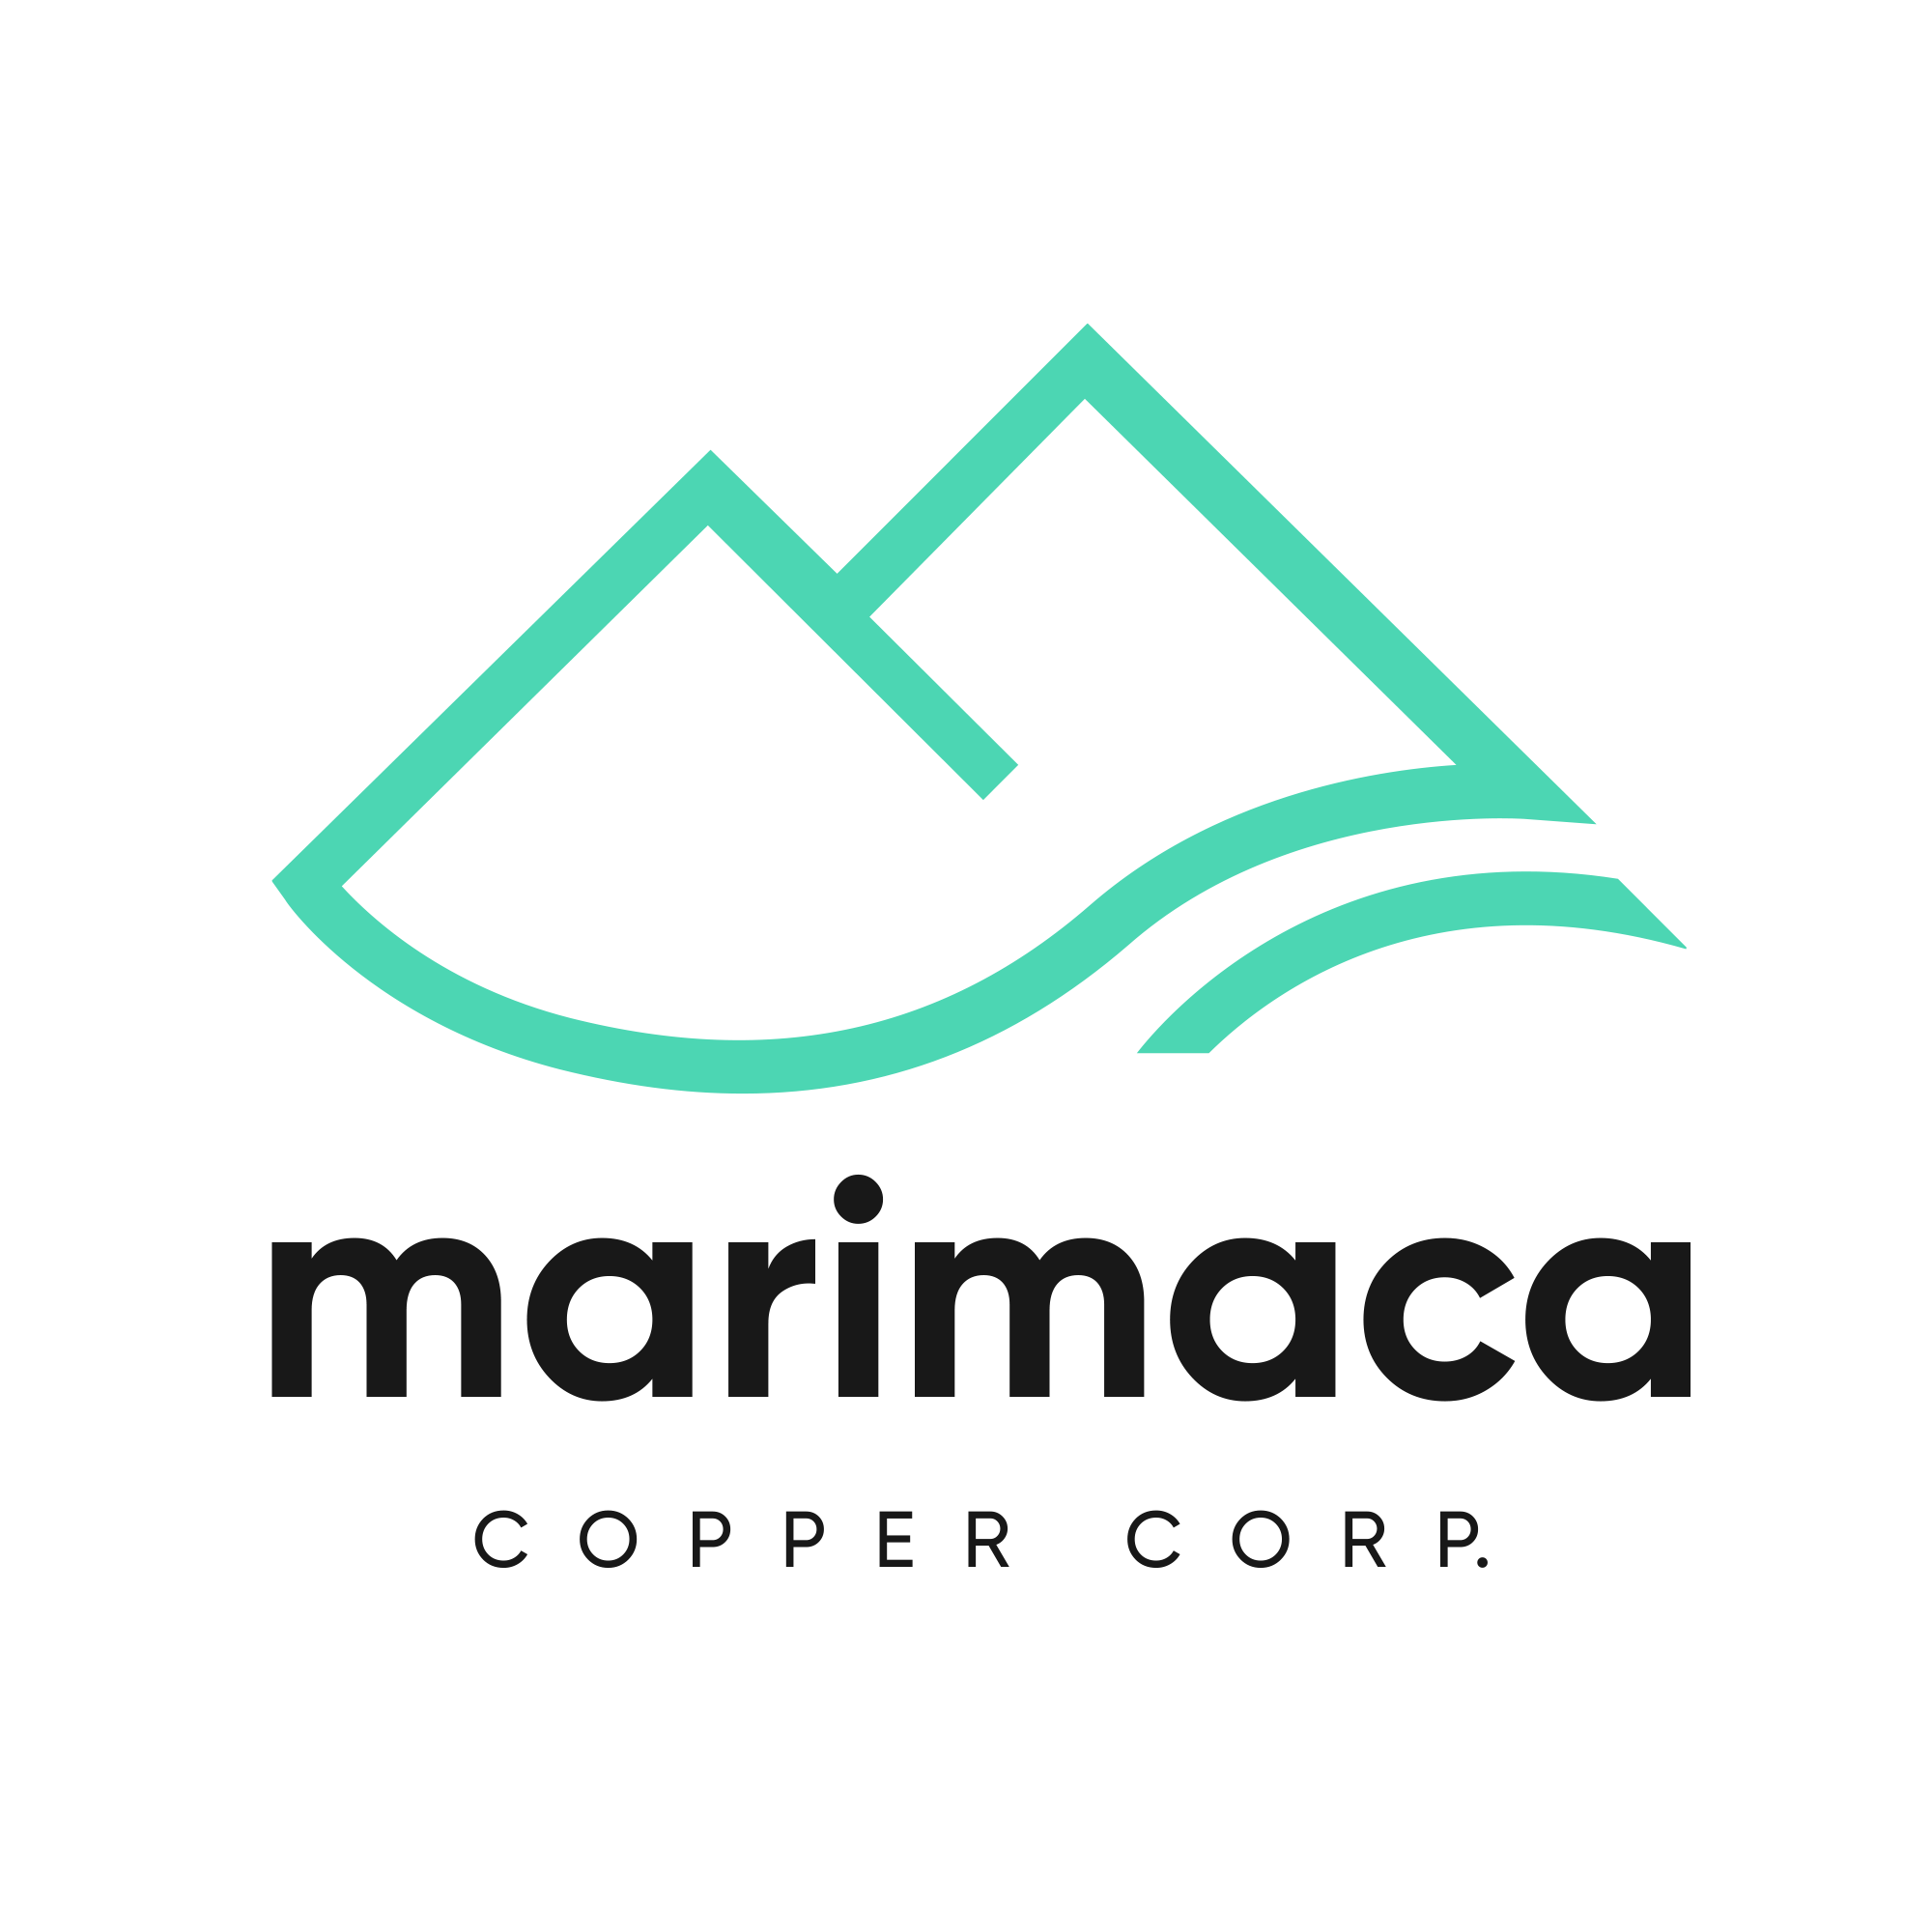 Independent Study Confirms Optimal Development Pathway for the Marimaca Copper Project